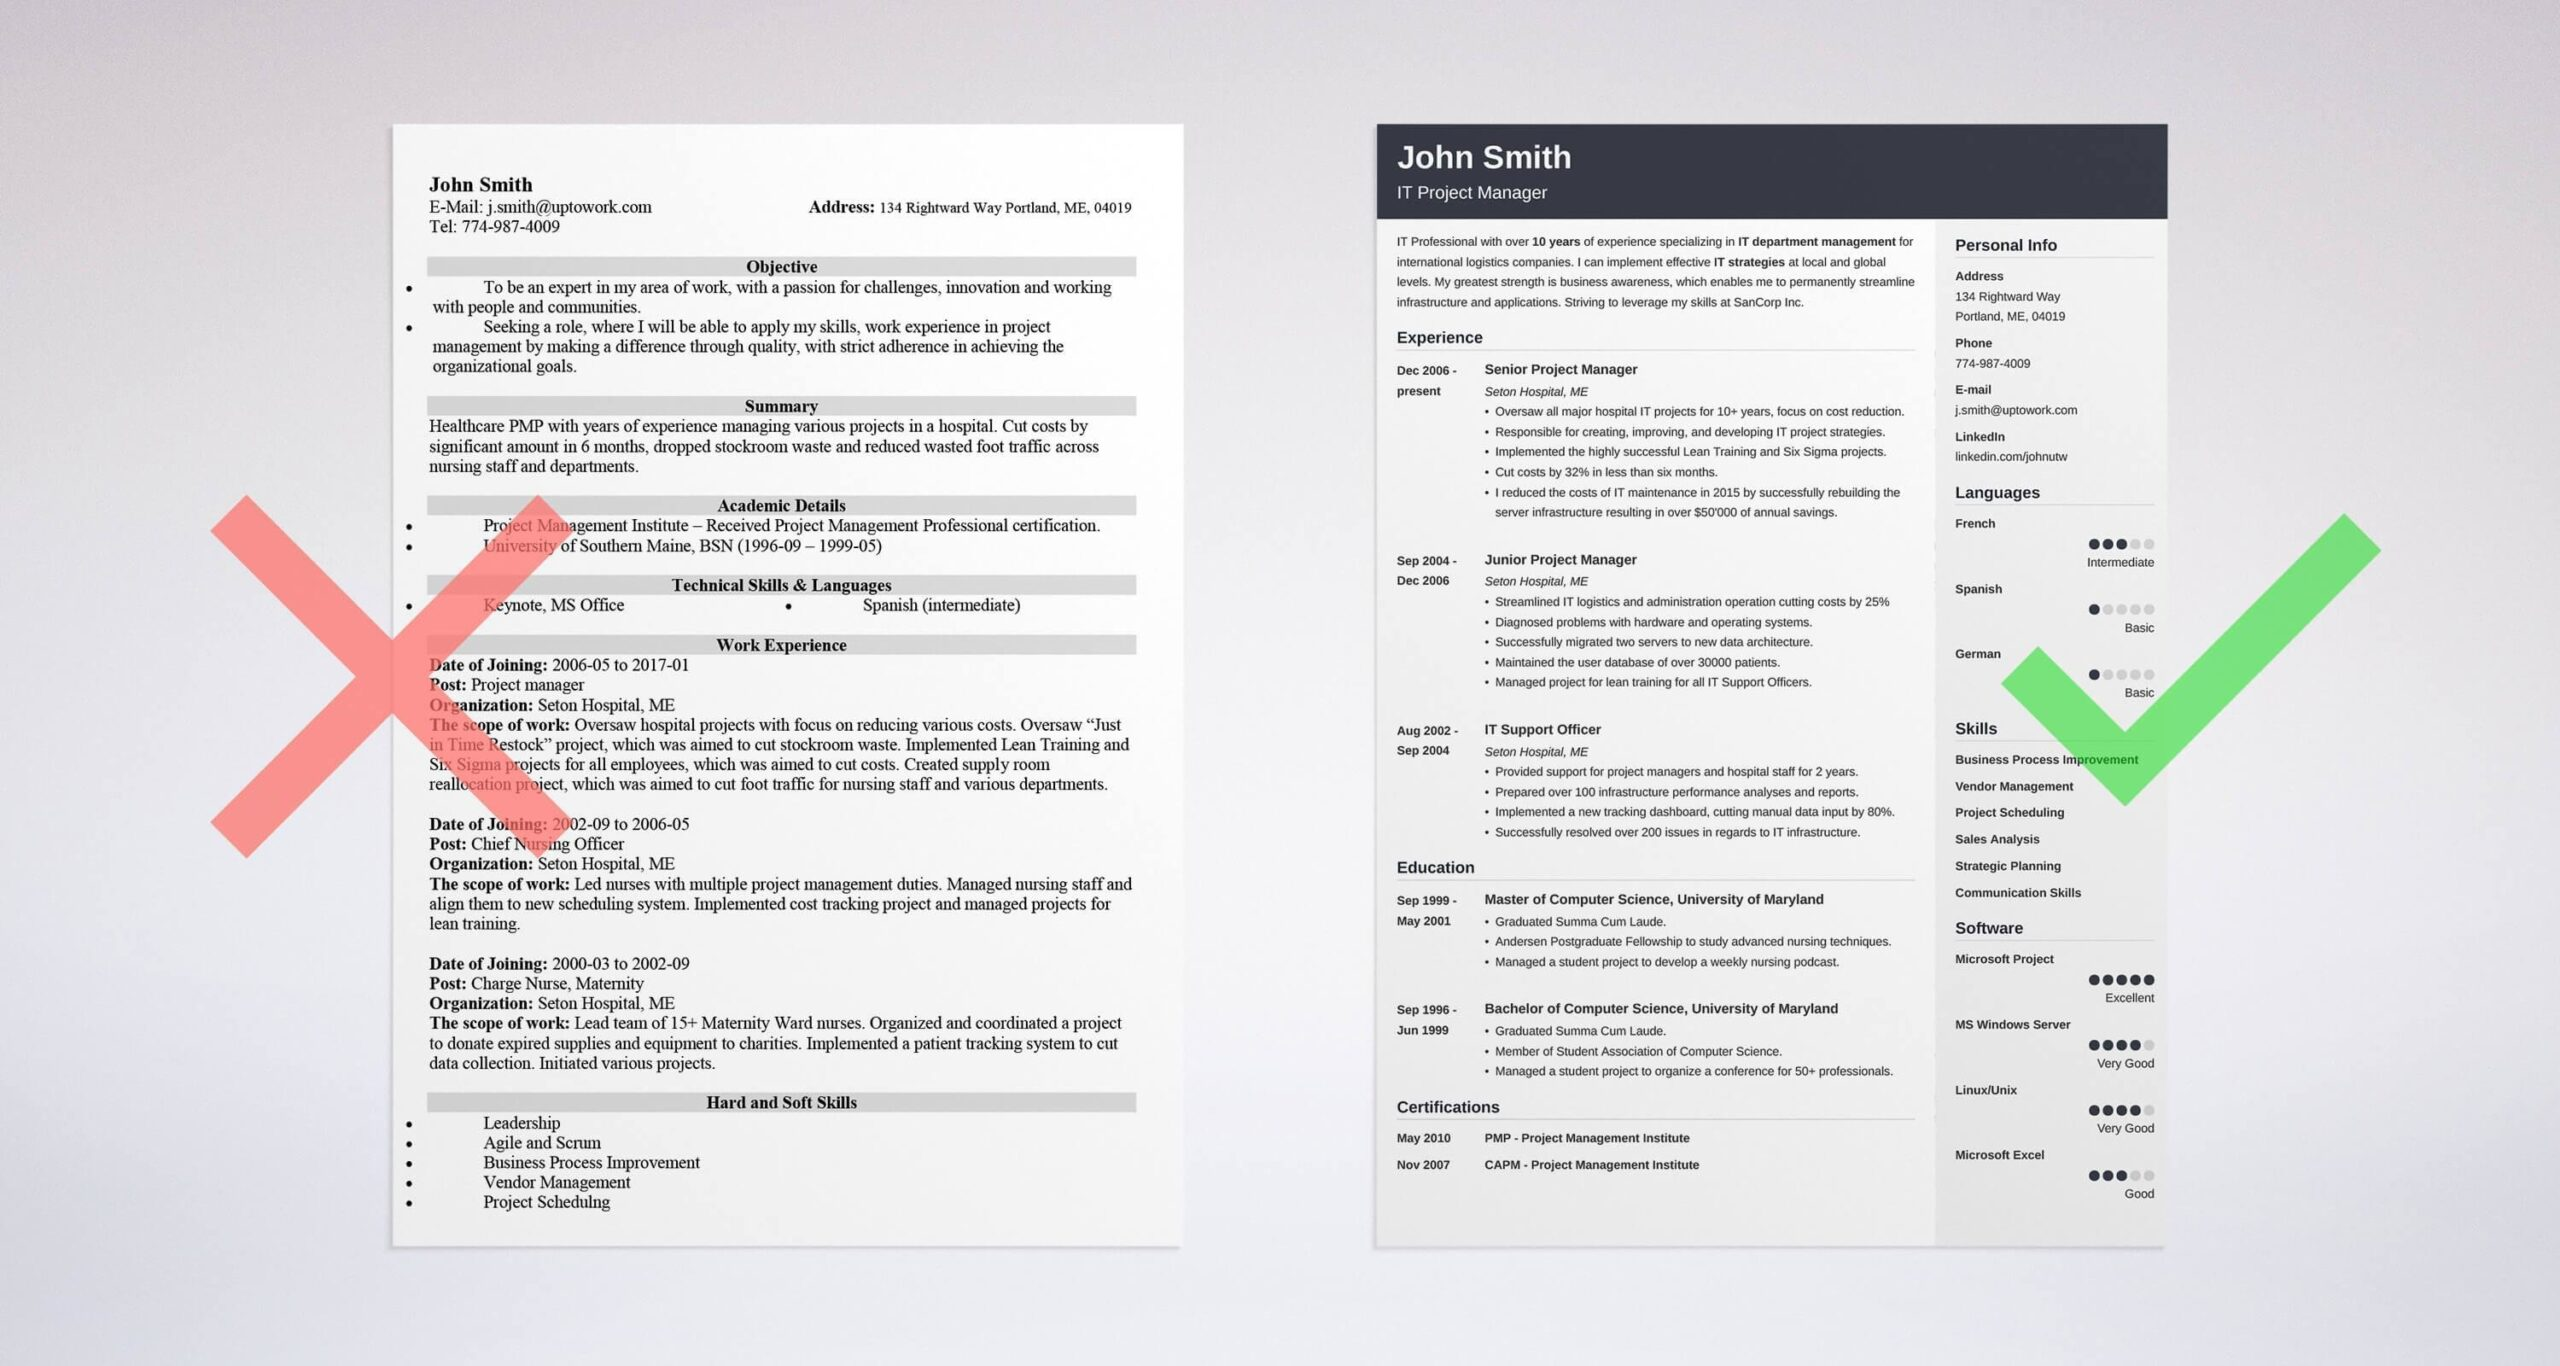 best resume tips tricks writing advice samples for making great project manager makeover Resume Tips For Making A Great Resume